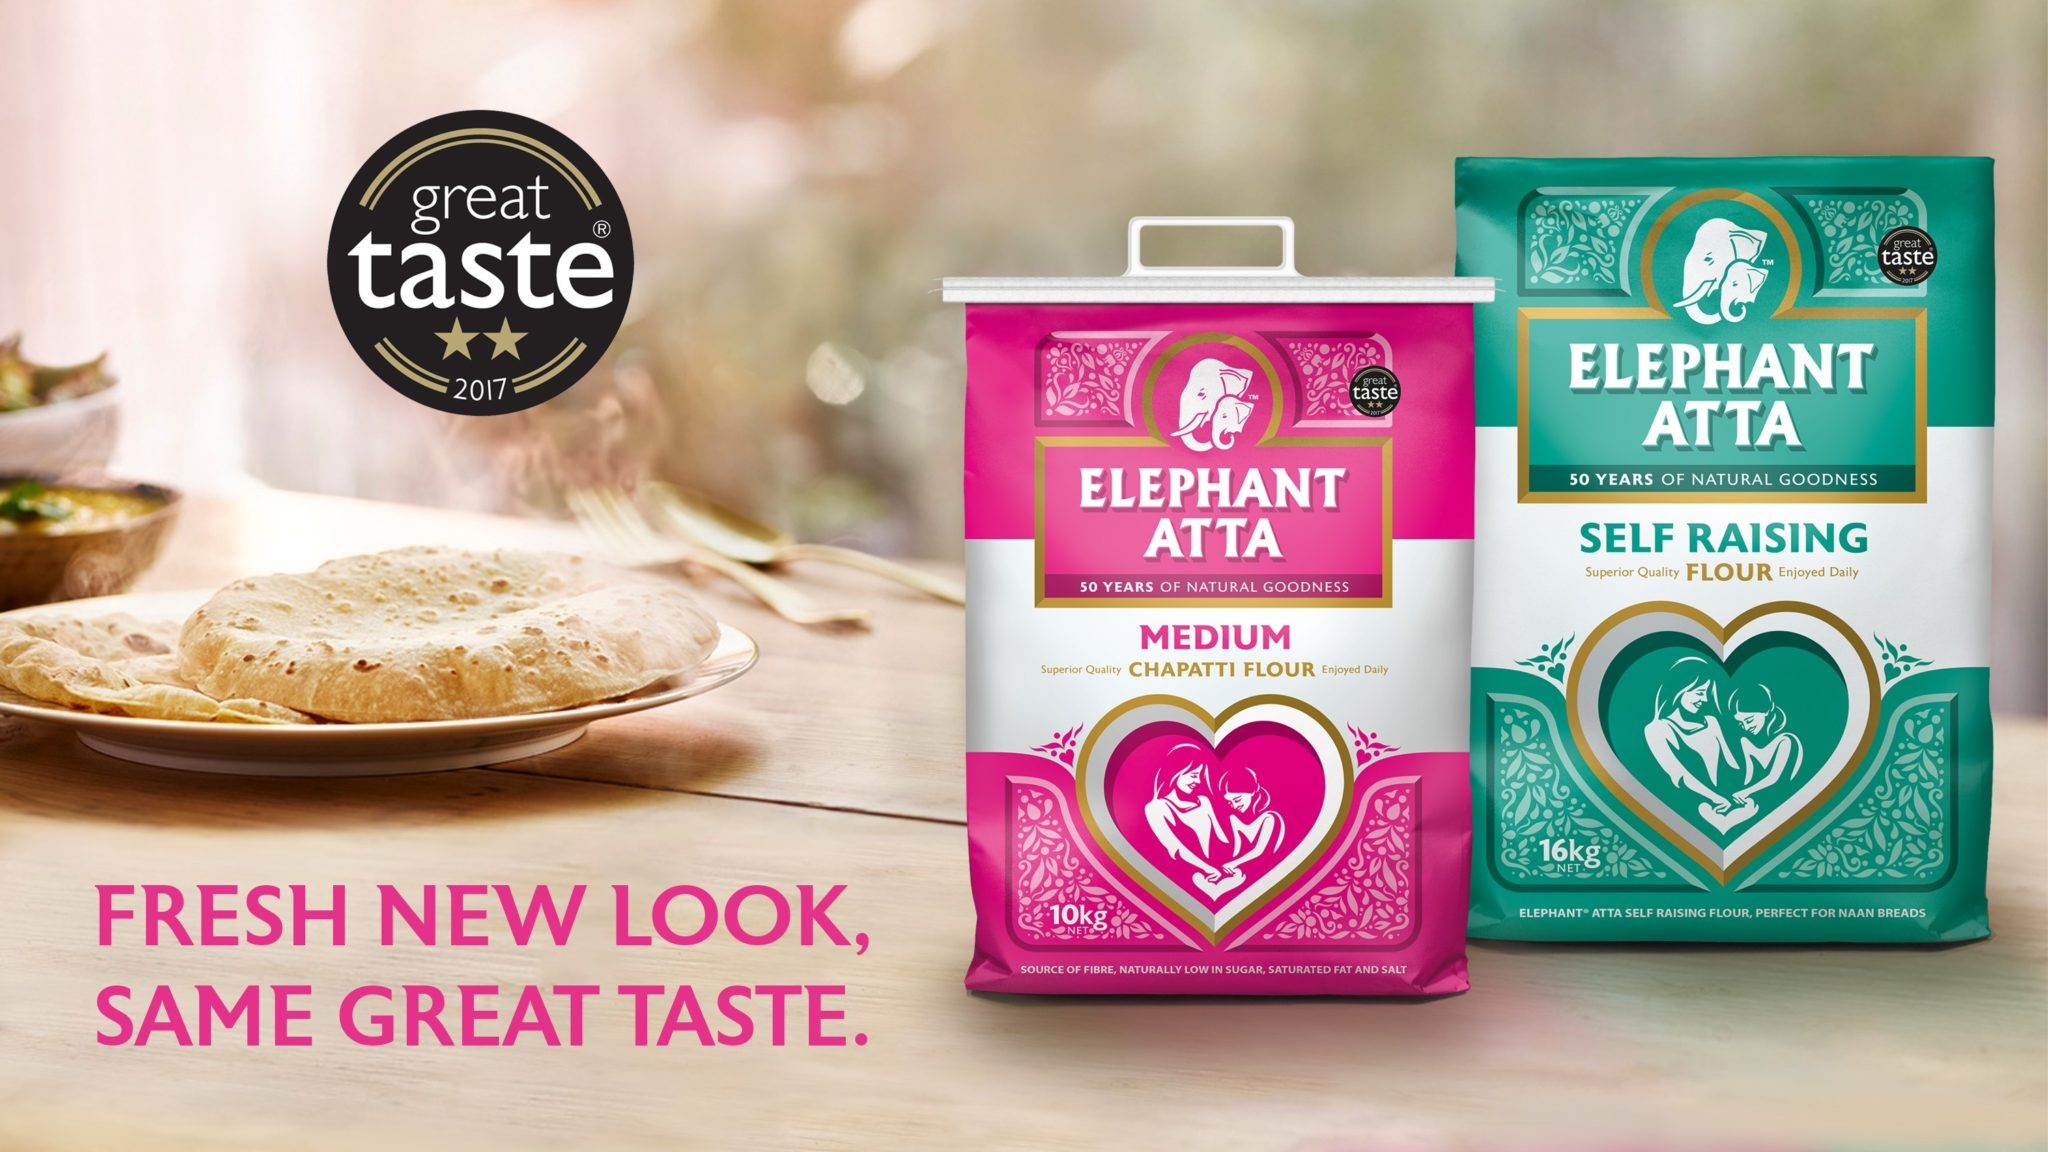 Elephant Atta: Fresh New Look, Same Great Taste